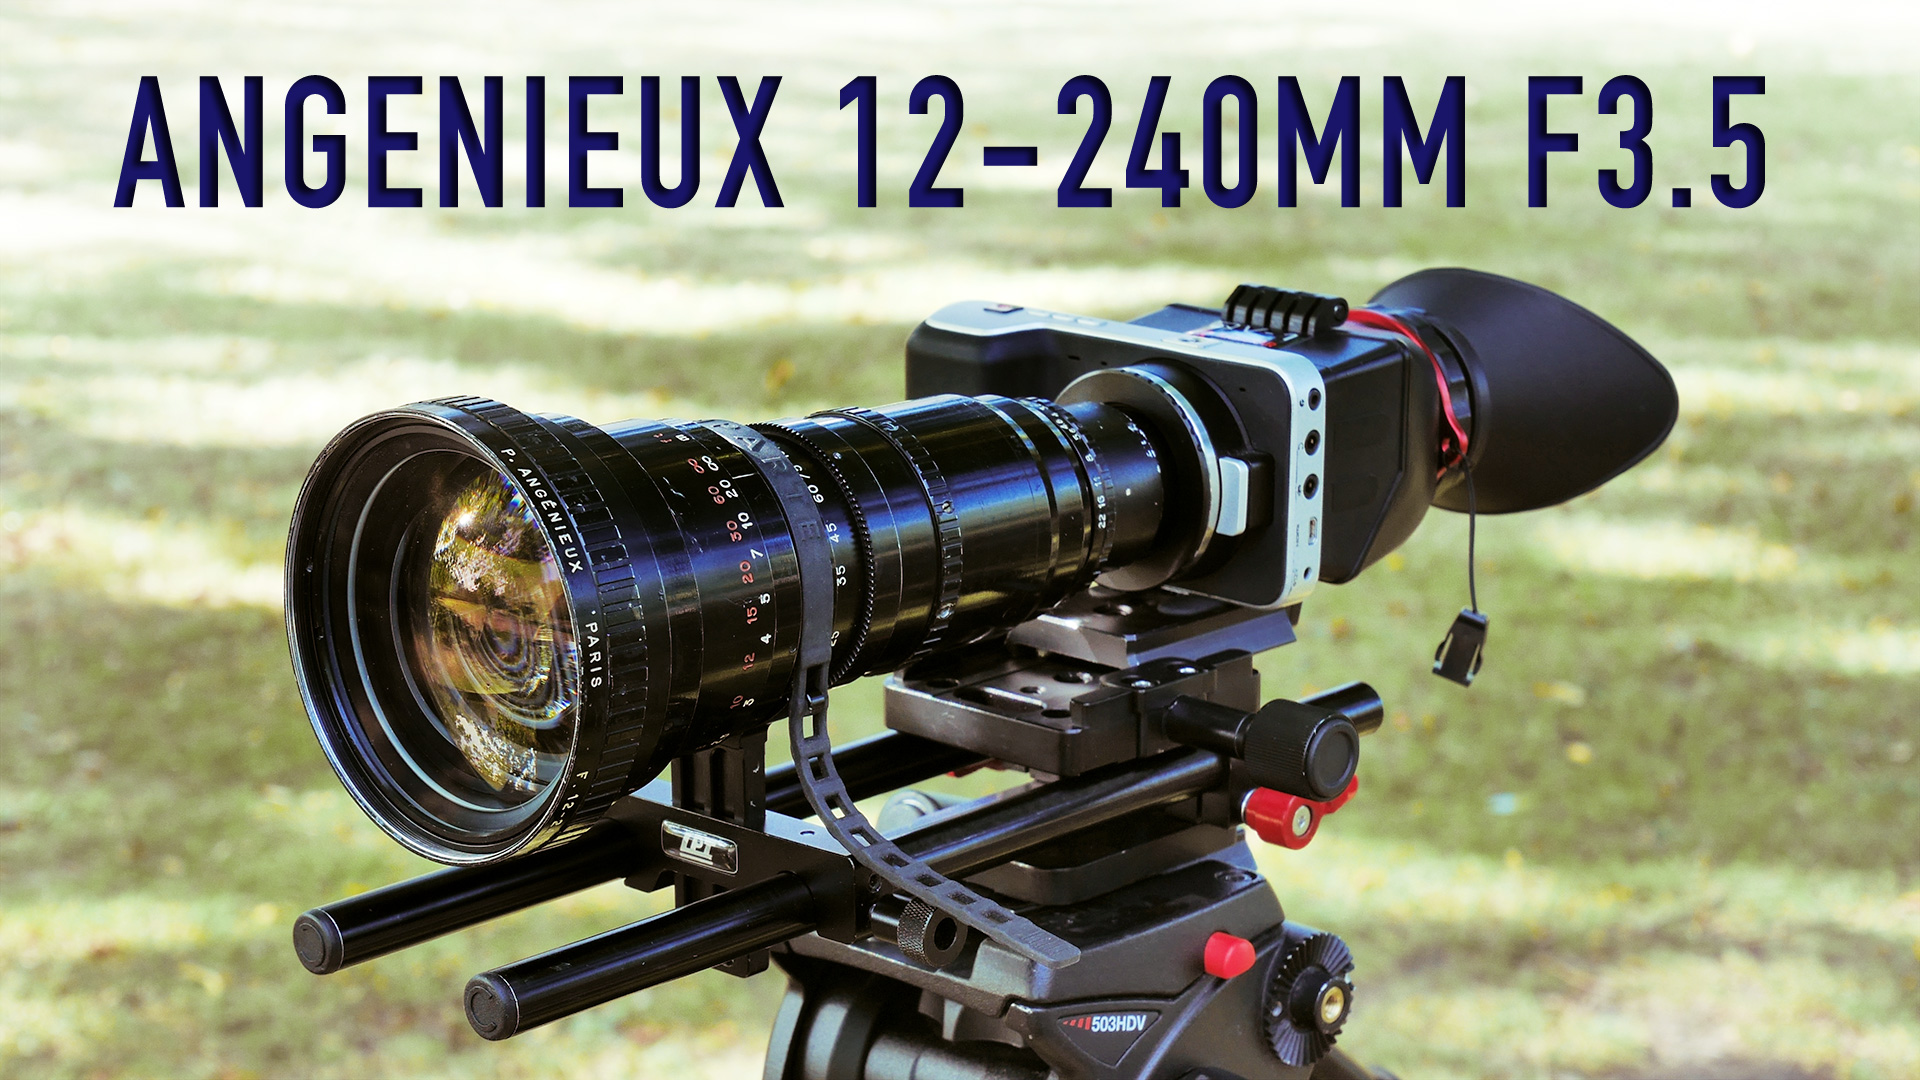 Using Angenieux 12-240mm F3.5 on BMPCC/S16 | In-Depth Review